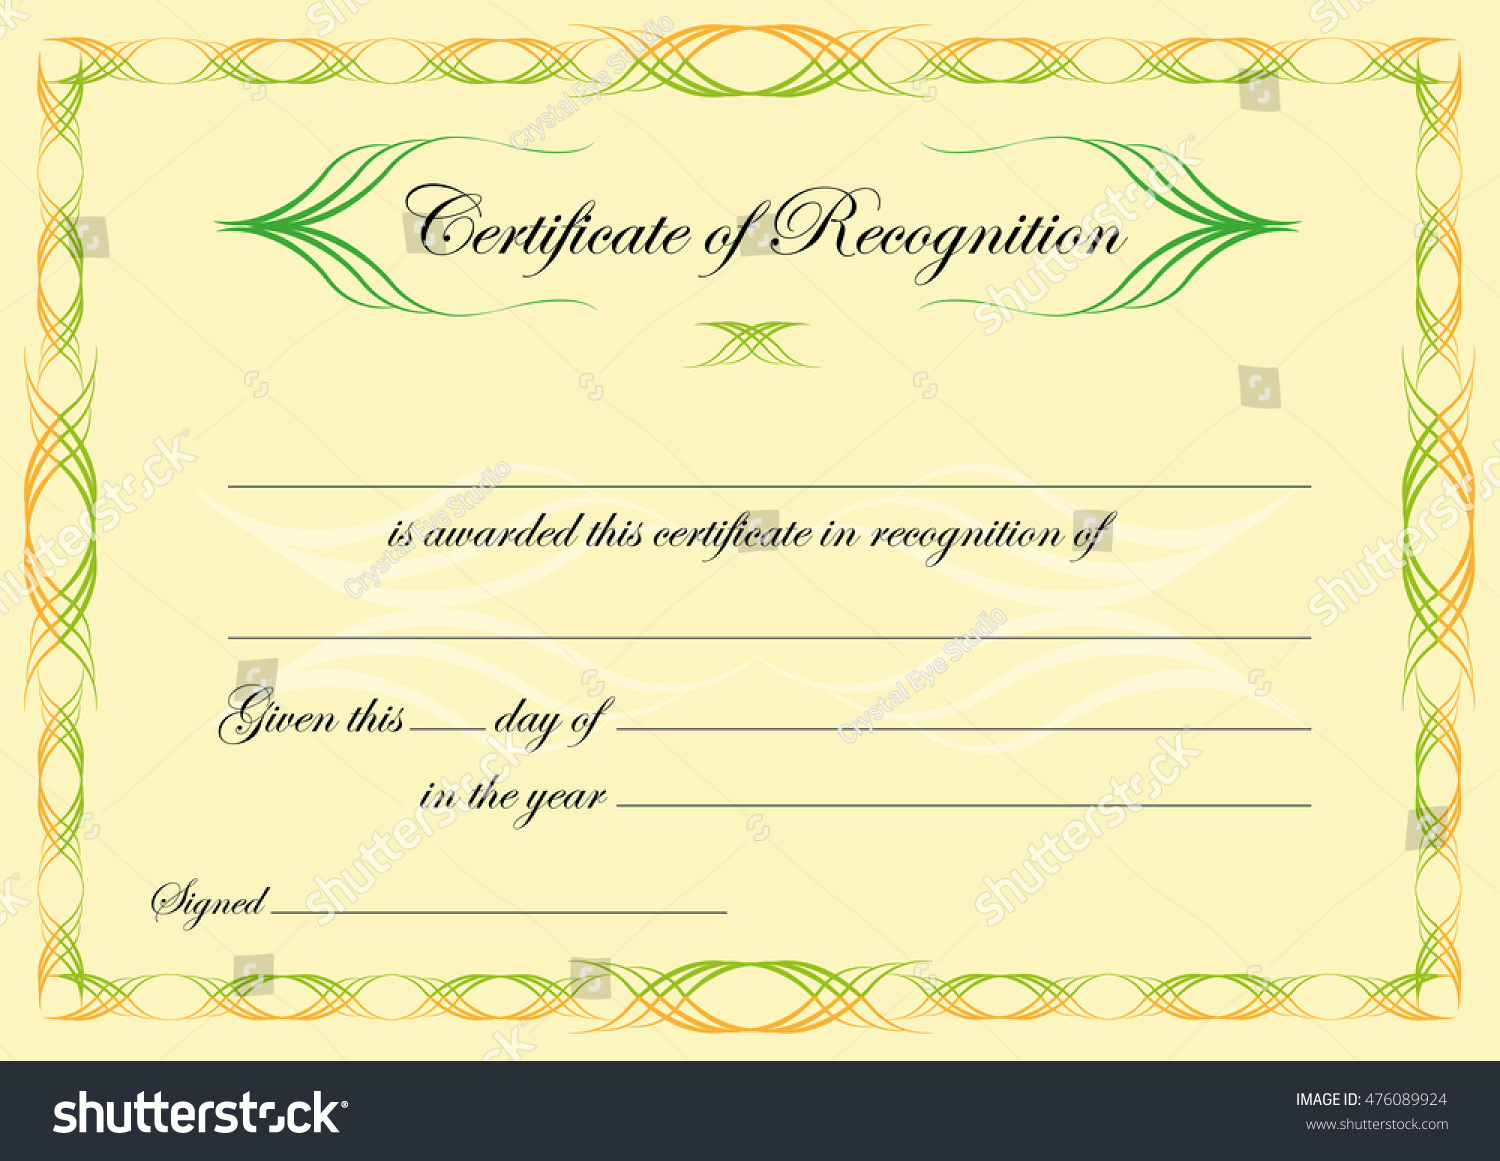 Certificate of recognition template drawing a floor plan island of certificate recognition template classical style swirls stock stock vector certificate of recognition template in classical style with swirls editable clip yadclub Images